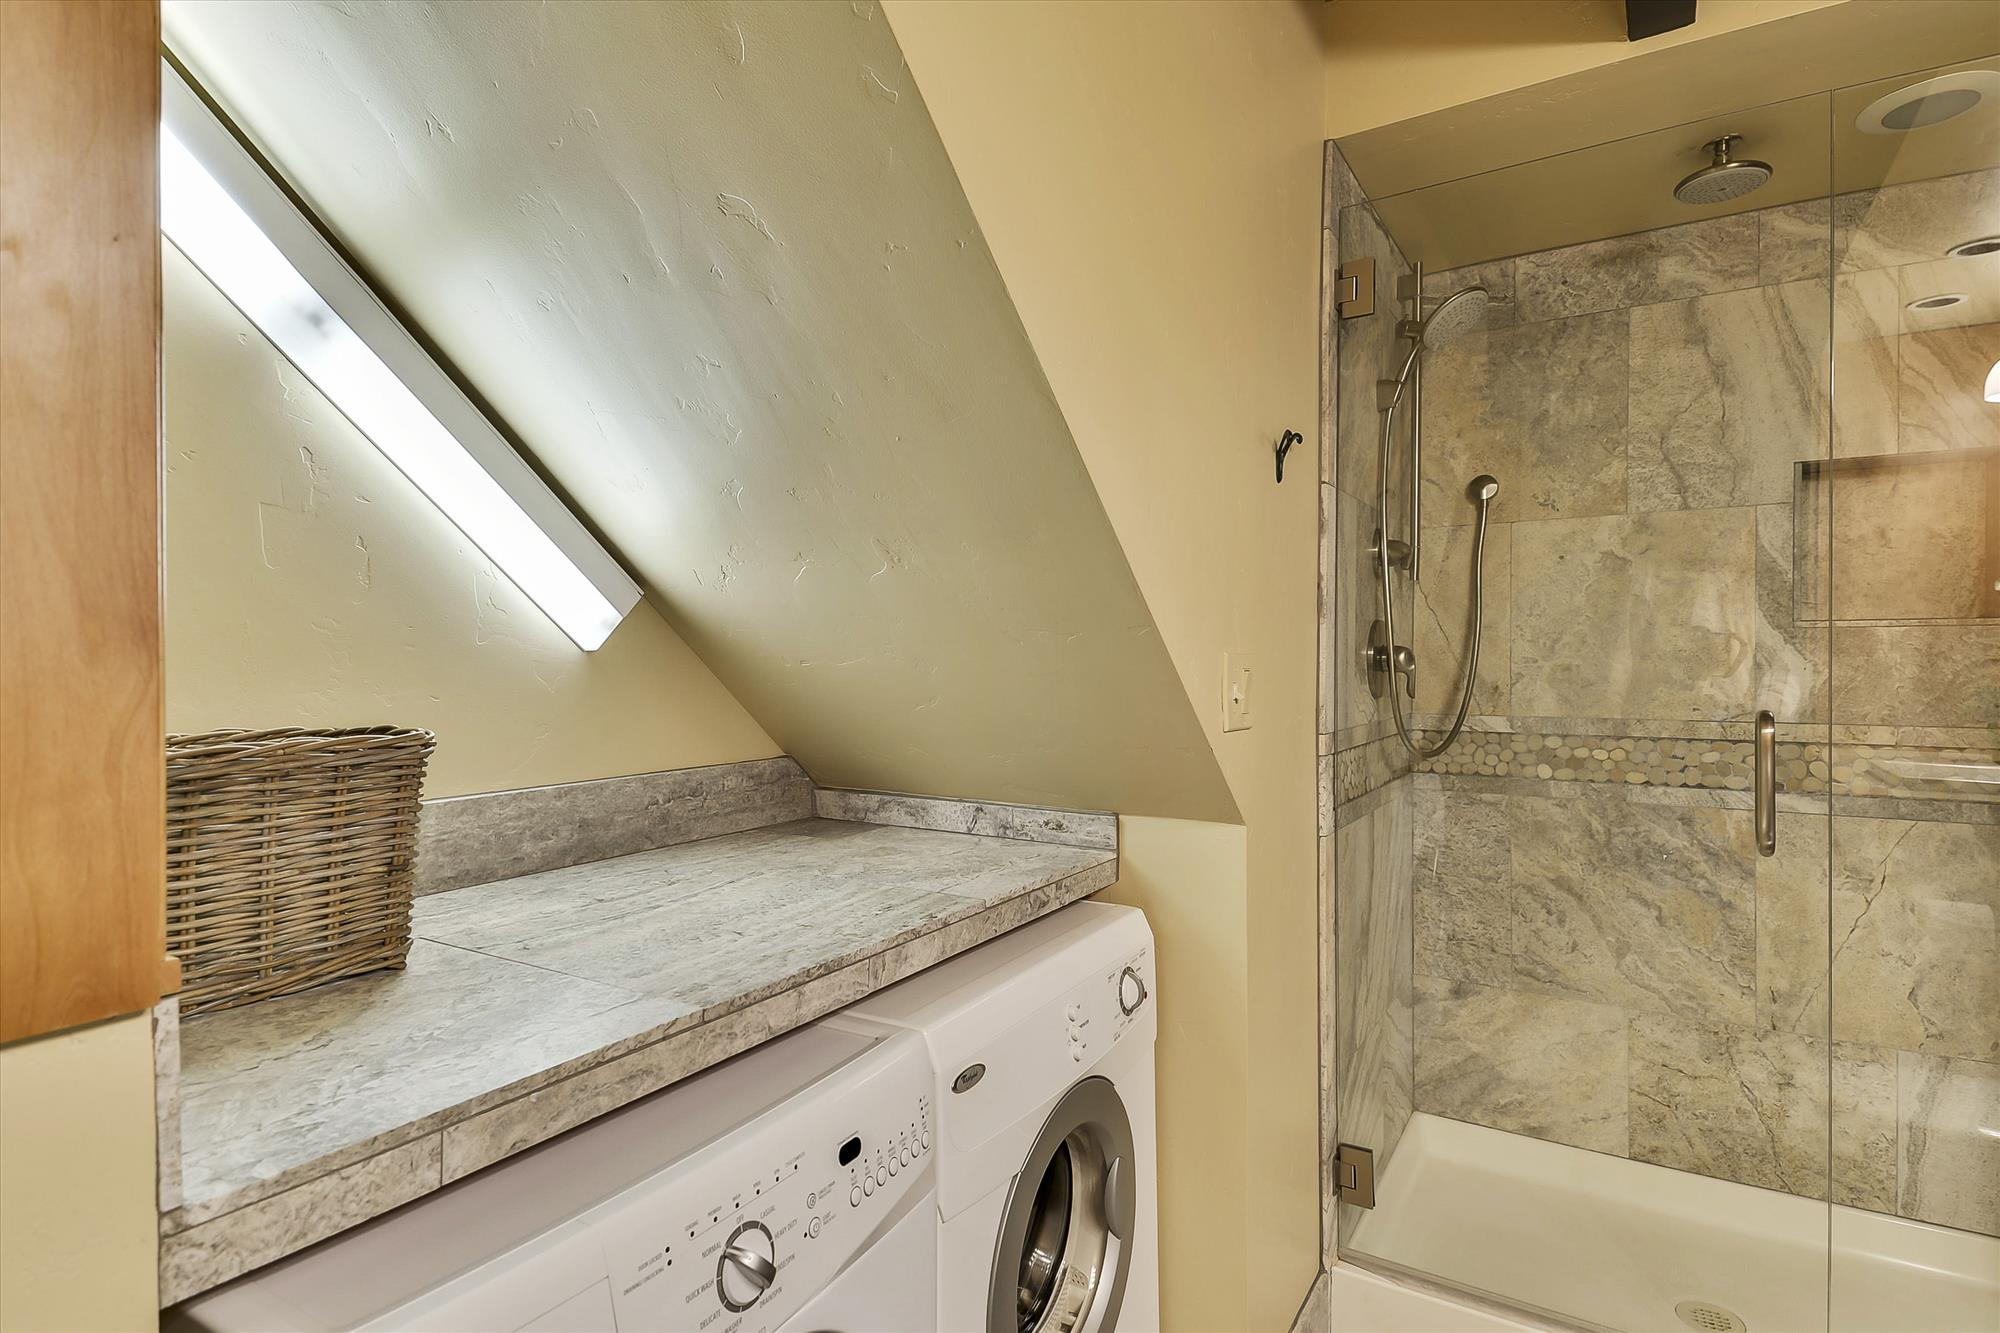 Lower/Entry Level,Washer Dryer,